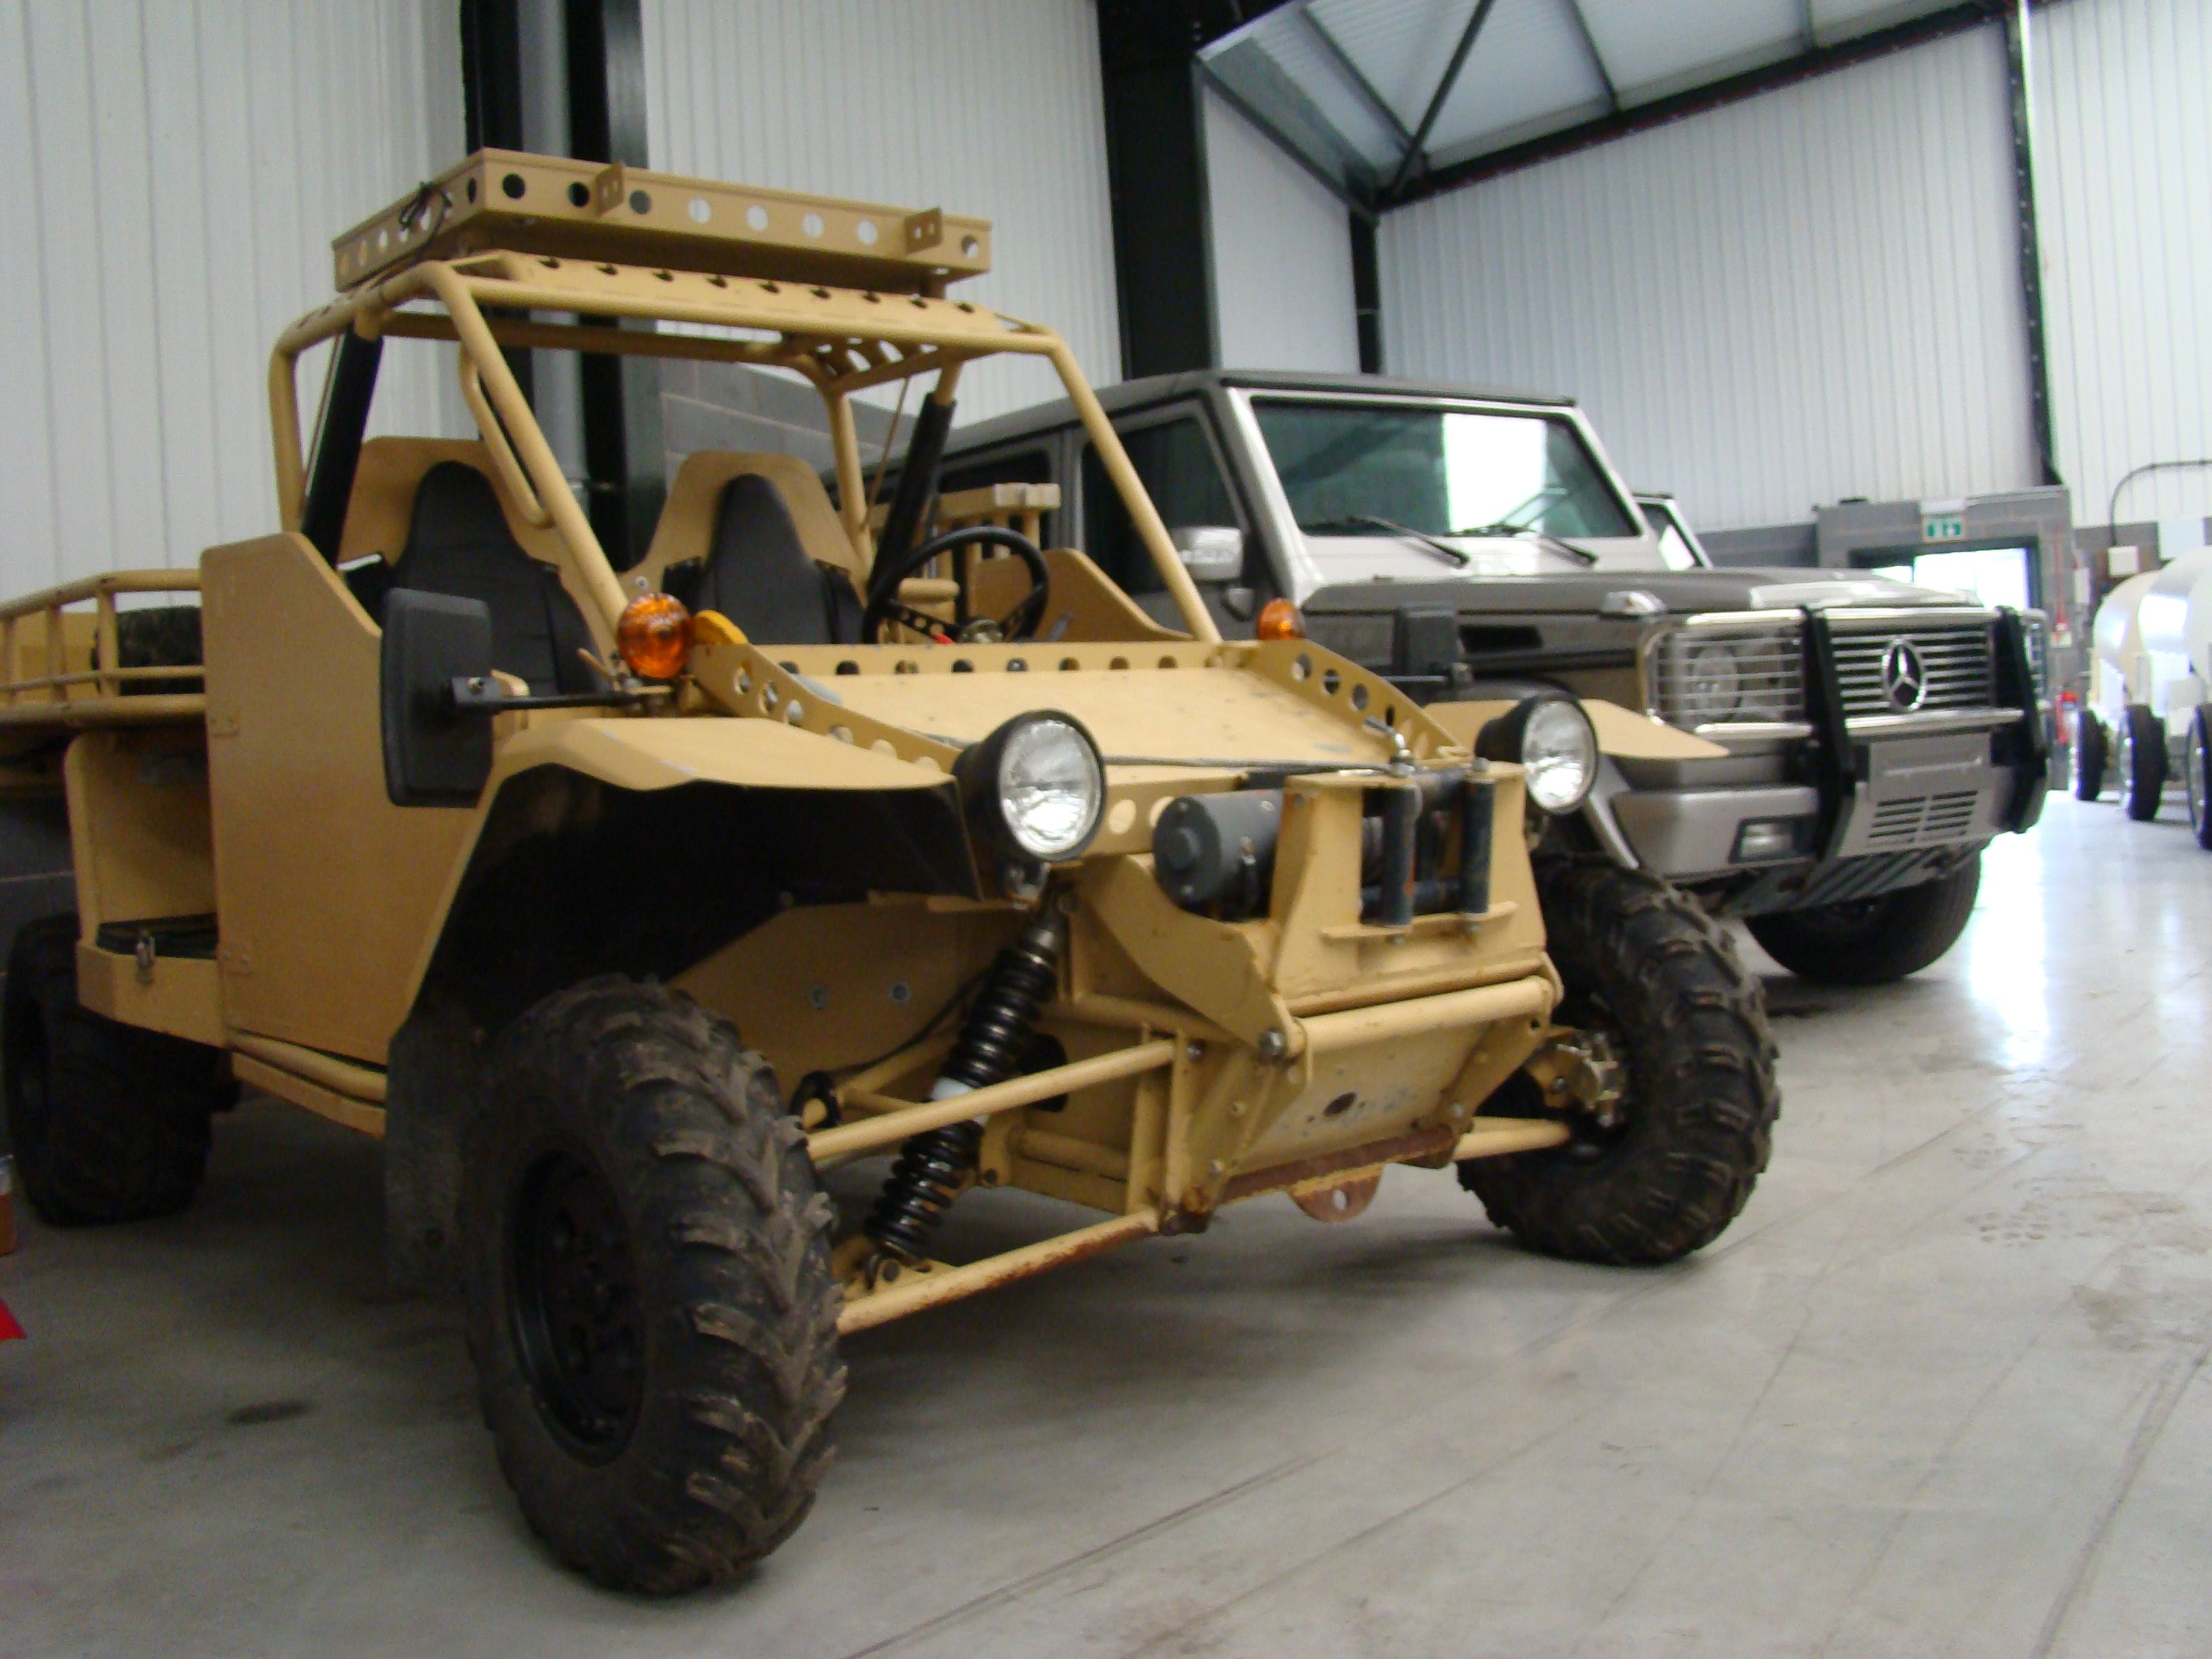 Was sold EPS Springer ATV Armoured Vehicle used Military trucks